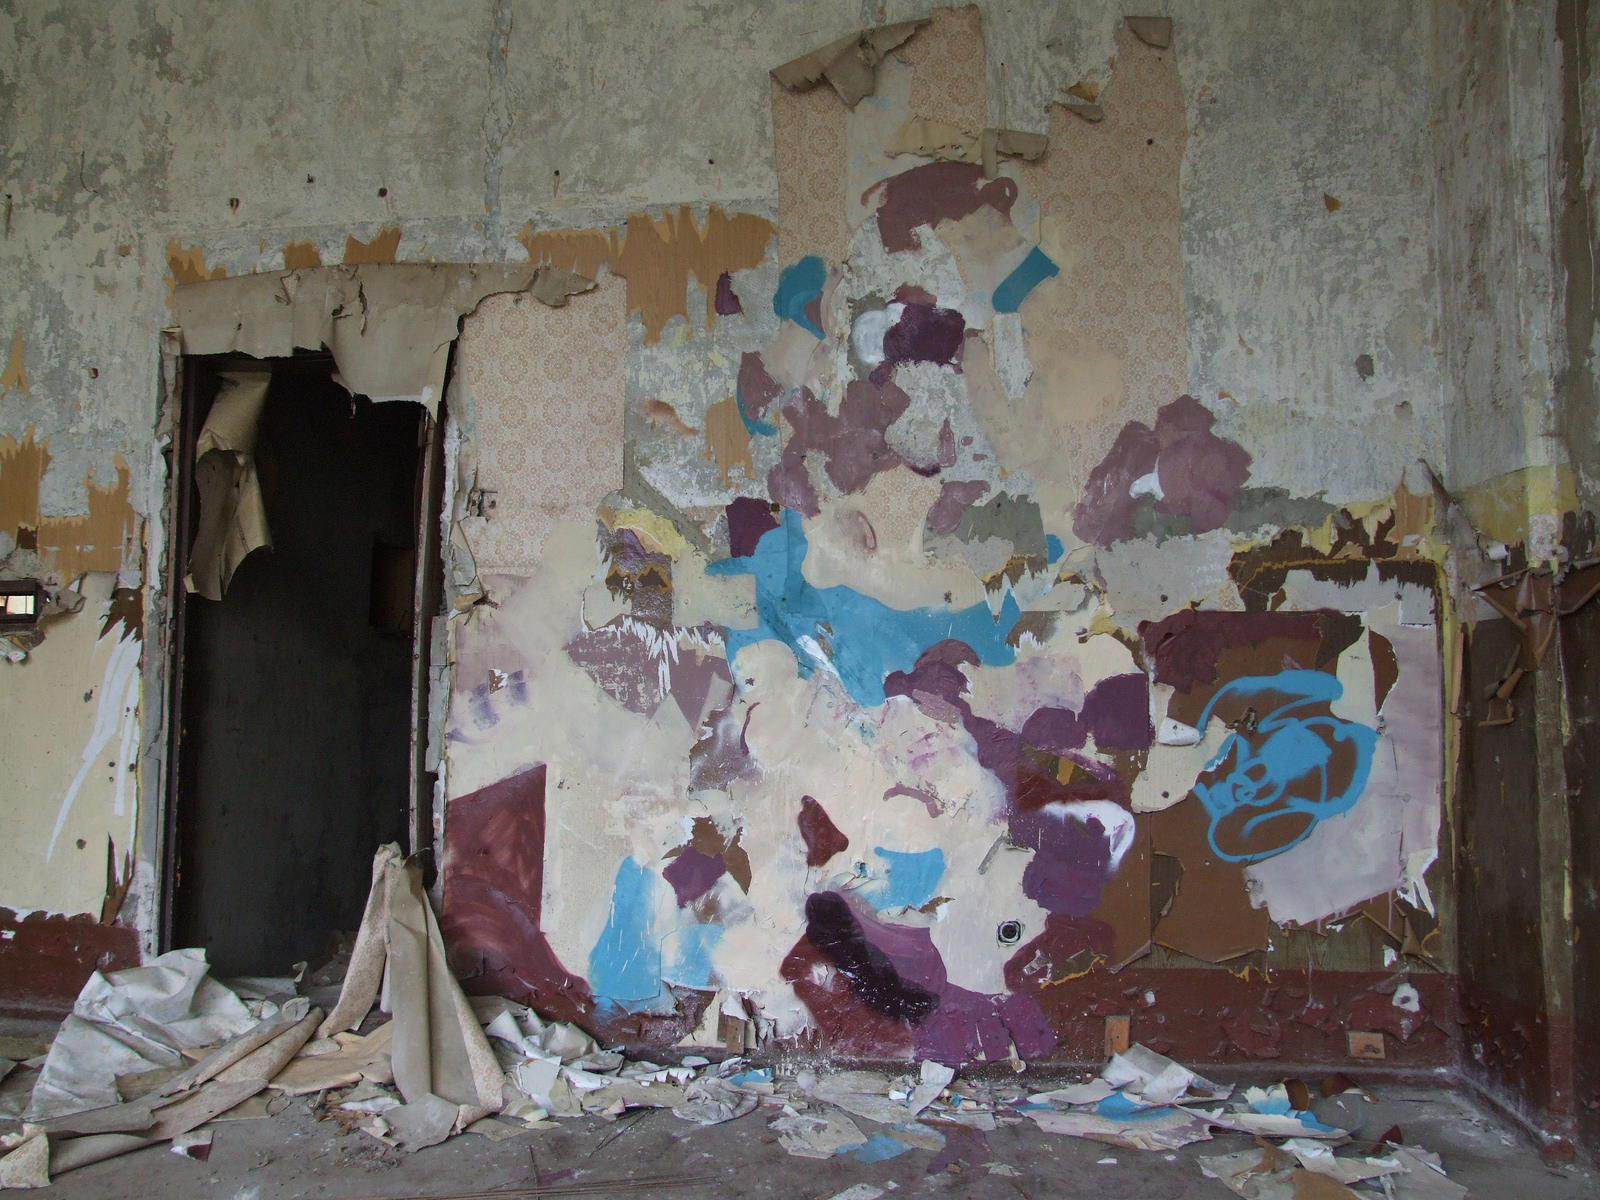 duncan-passmore-new-murals-in-an-abandoned-building-03